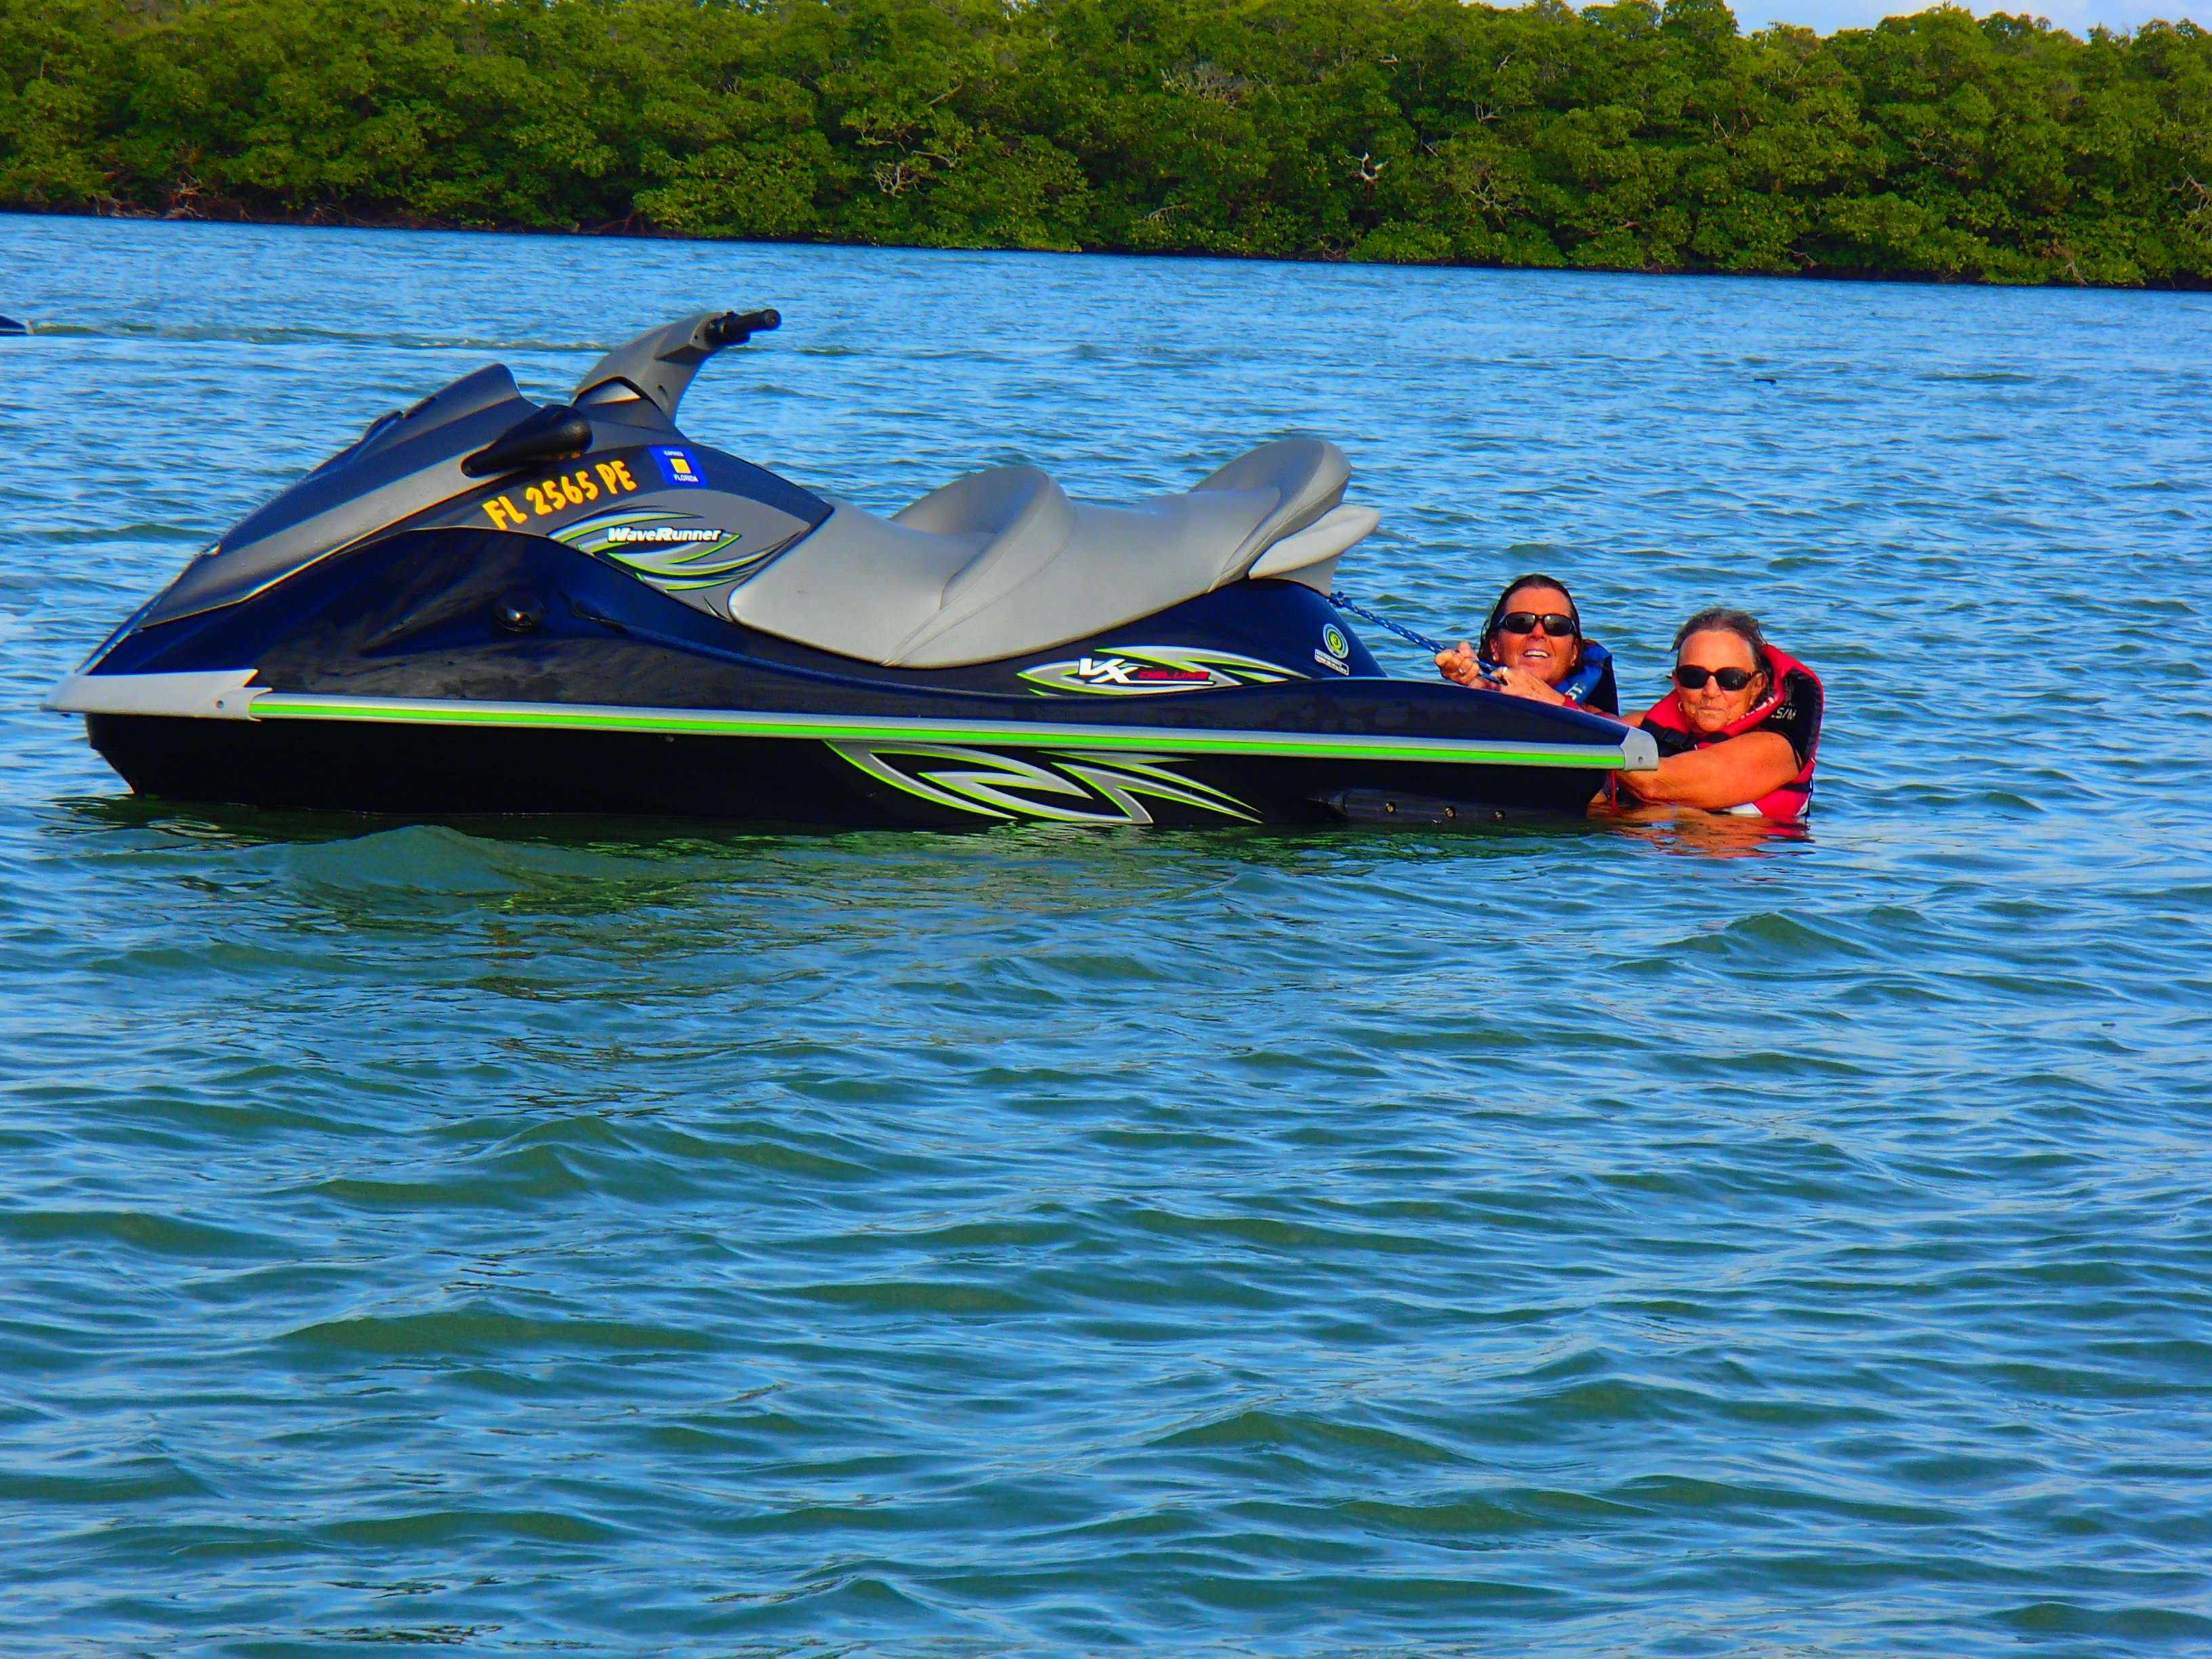 Two women who fell of a jet ski